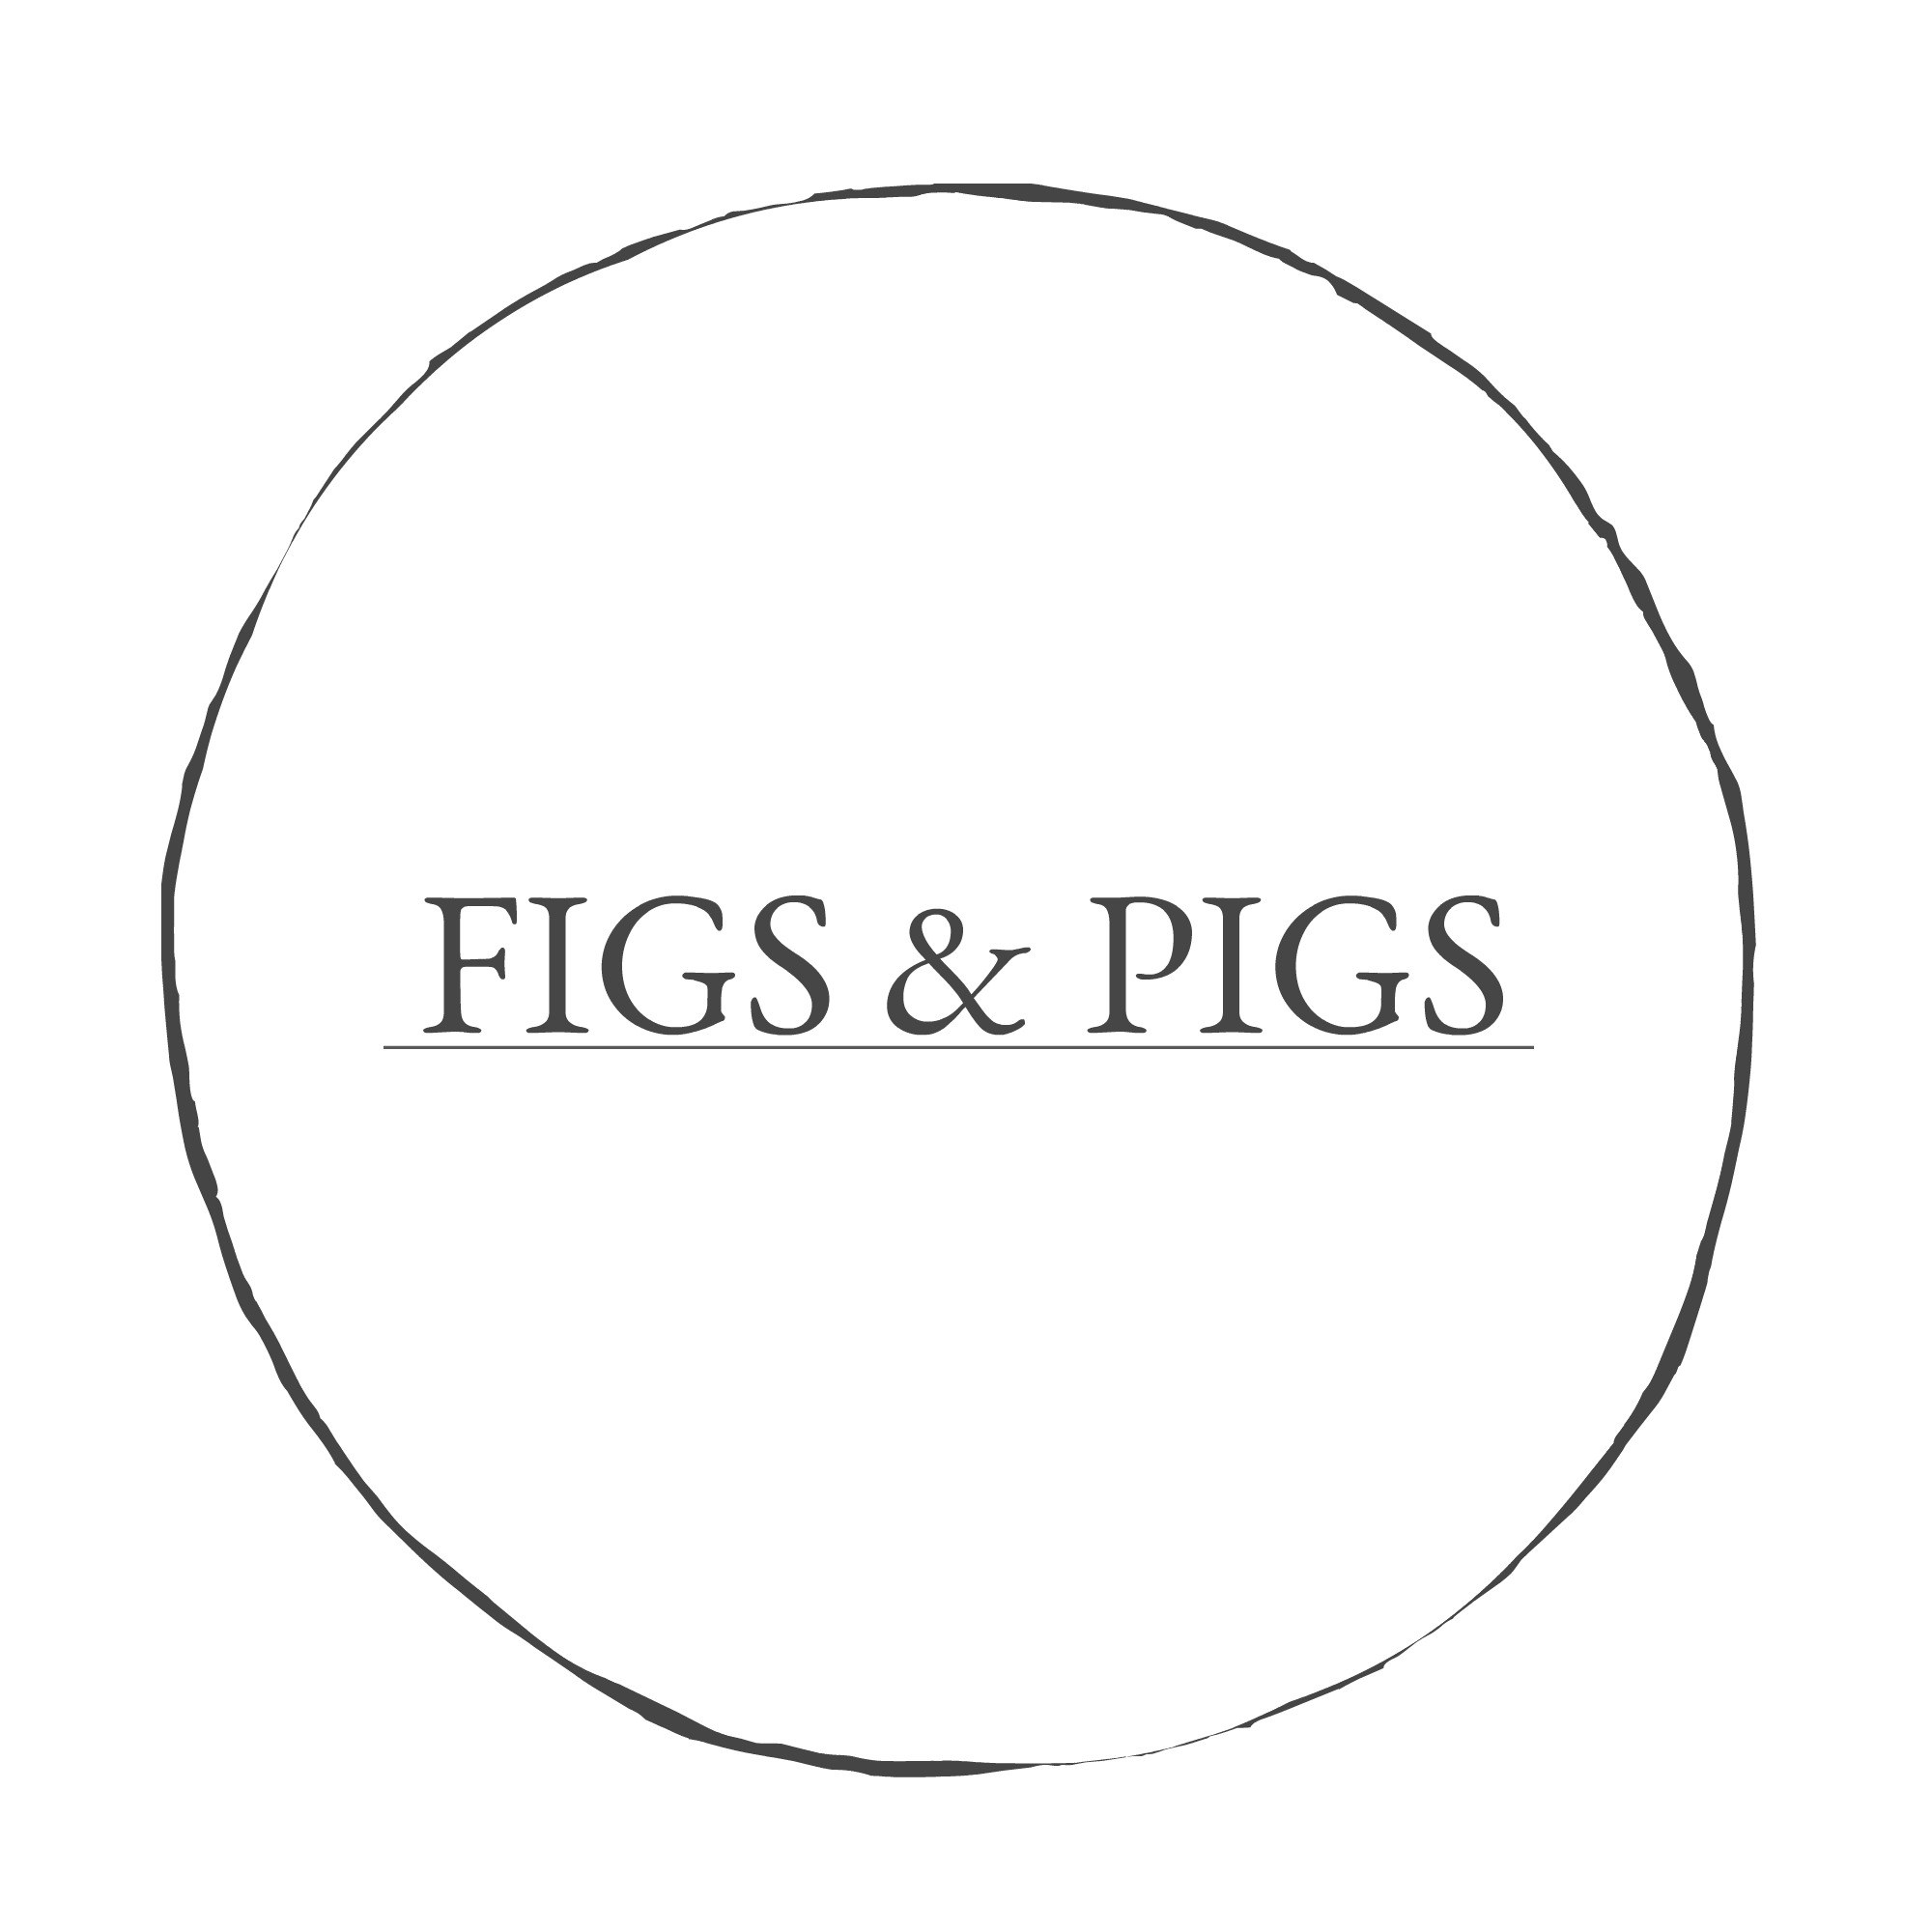 Figs & Pigs